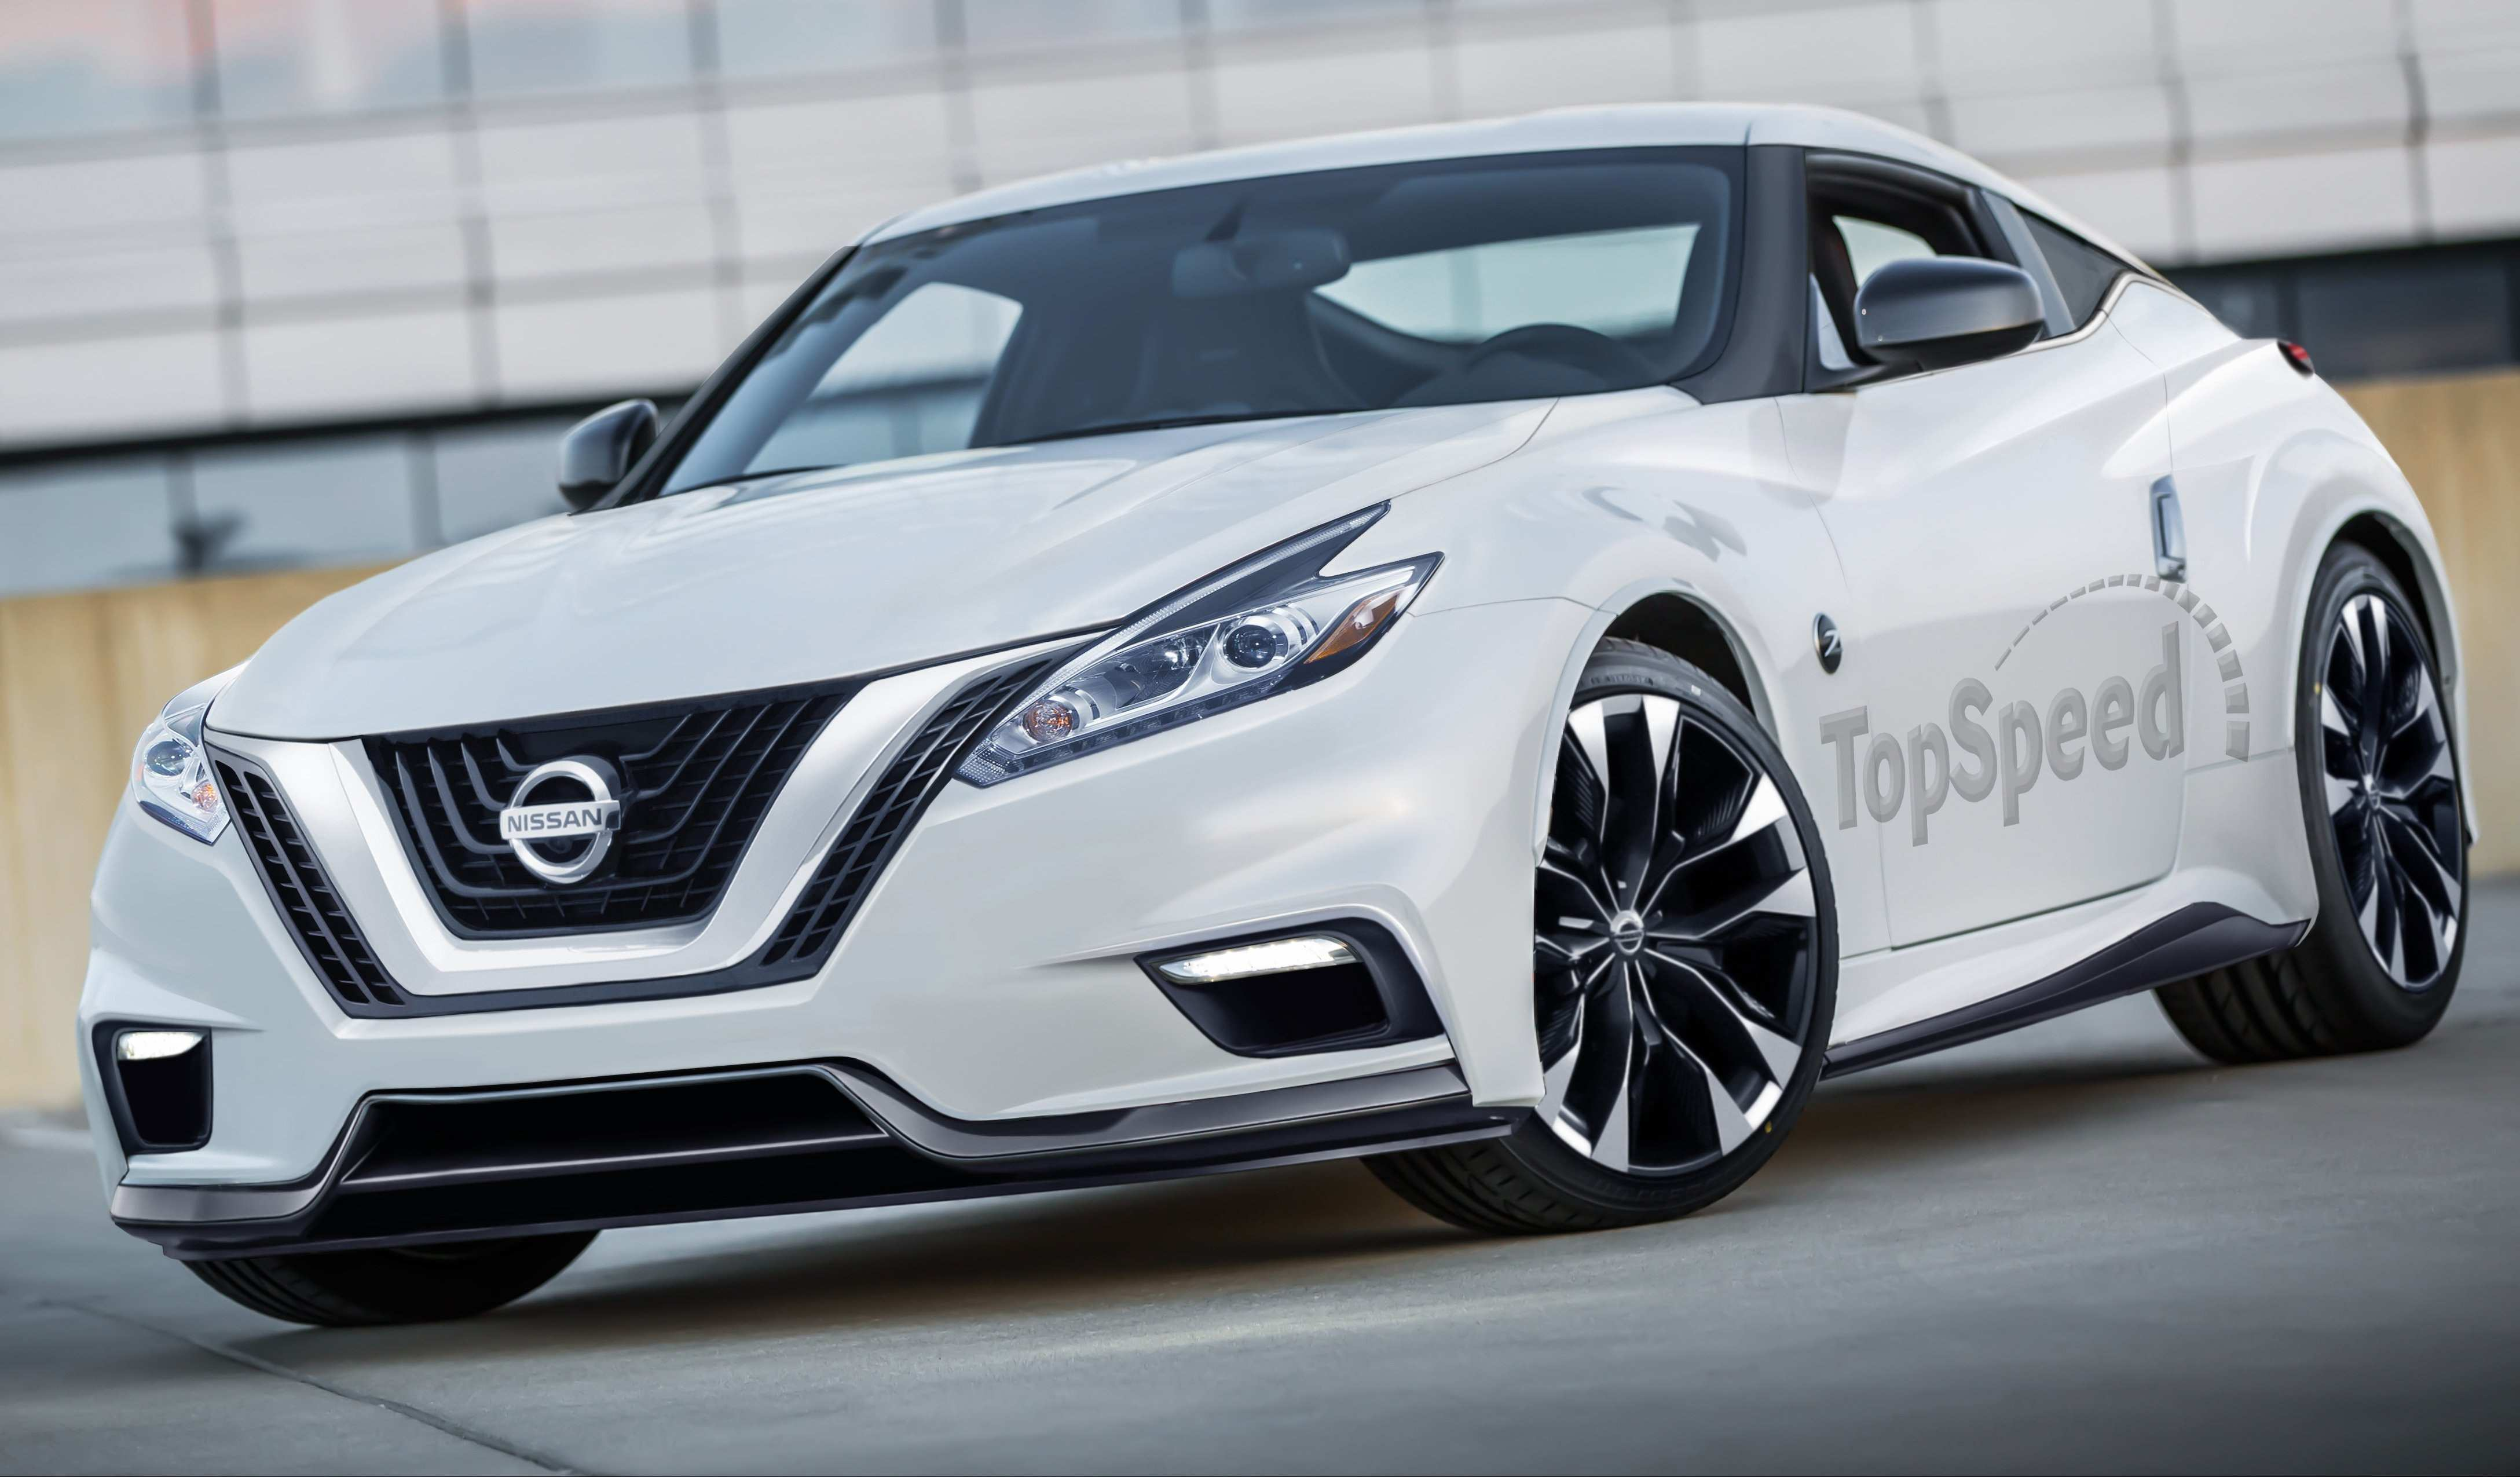 74 The 2019 Nissan Z35 Exterior with 2019 Nissan Z35